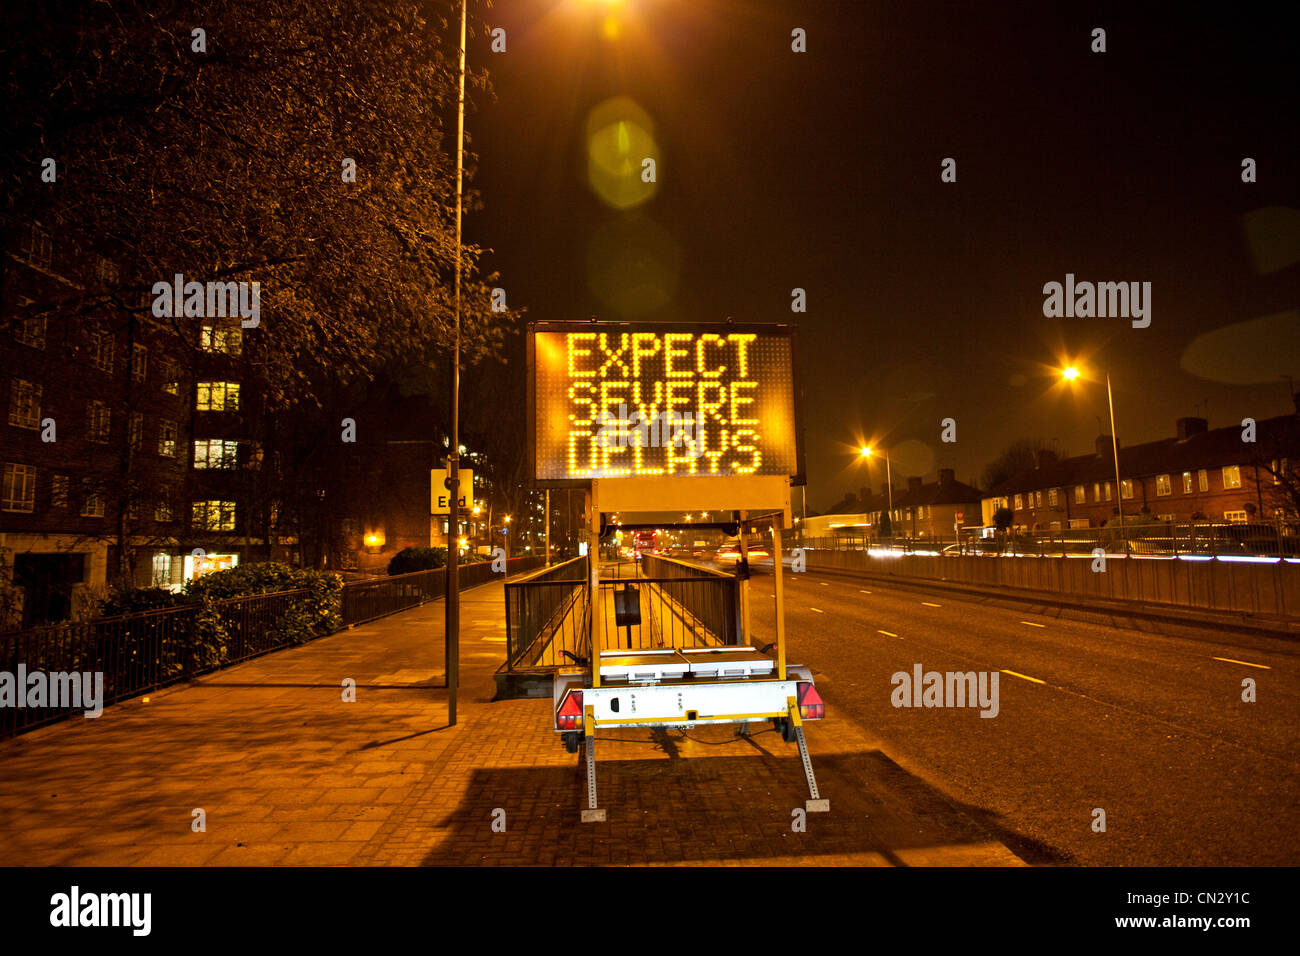 Road sign in urban scene at night, London, England - Stock Image